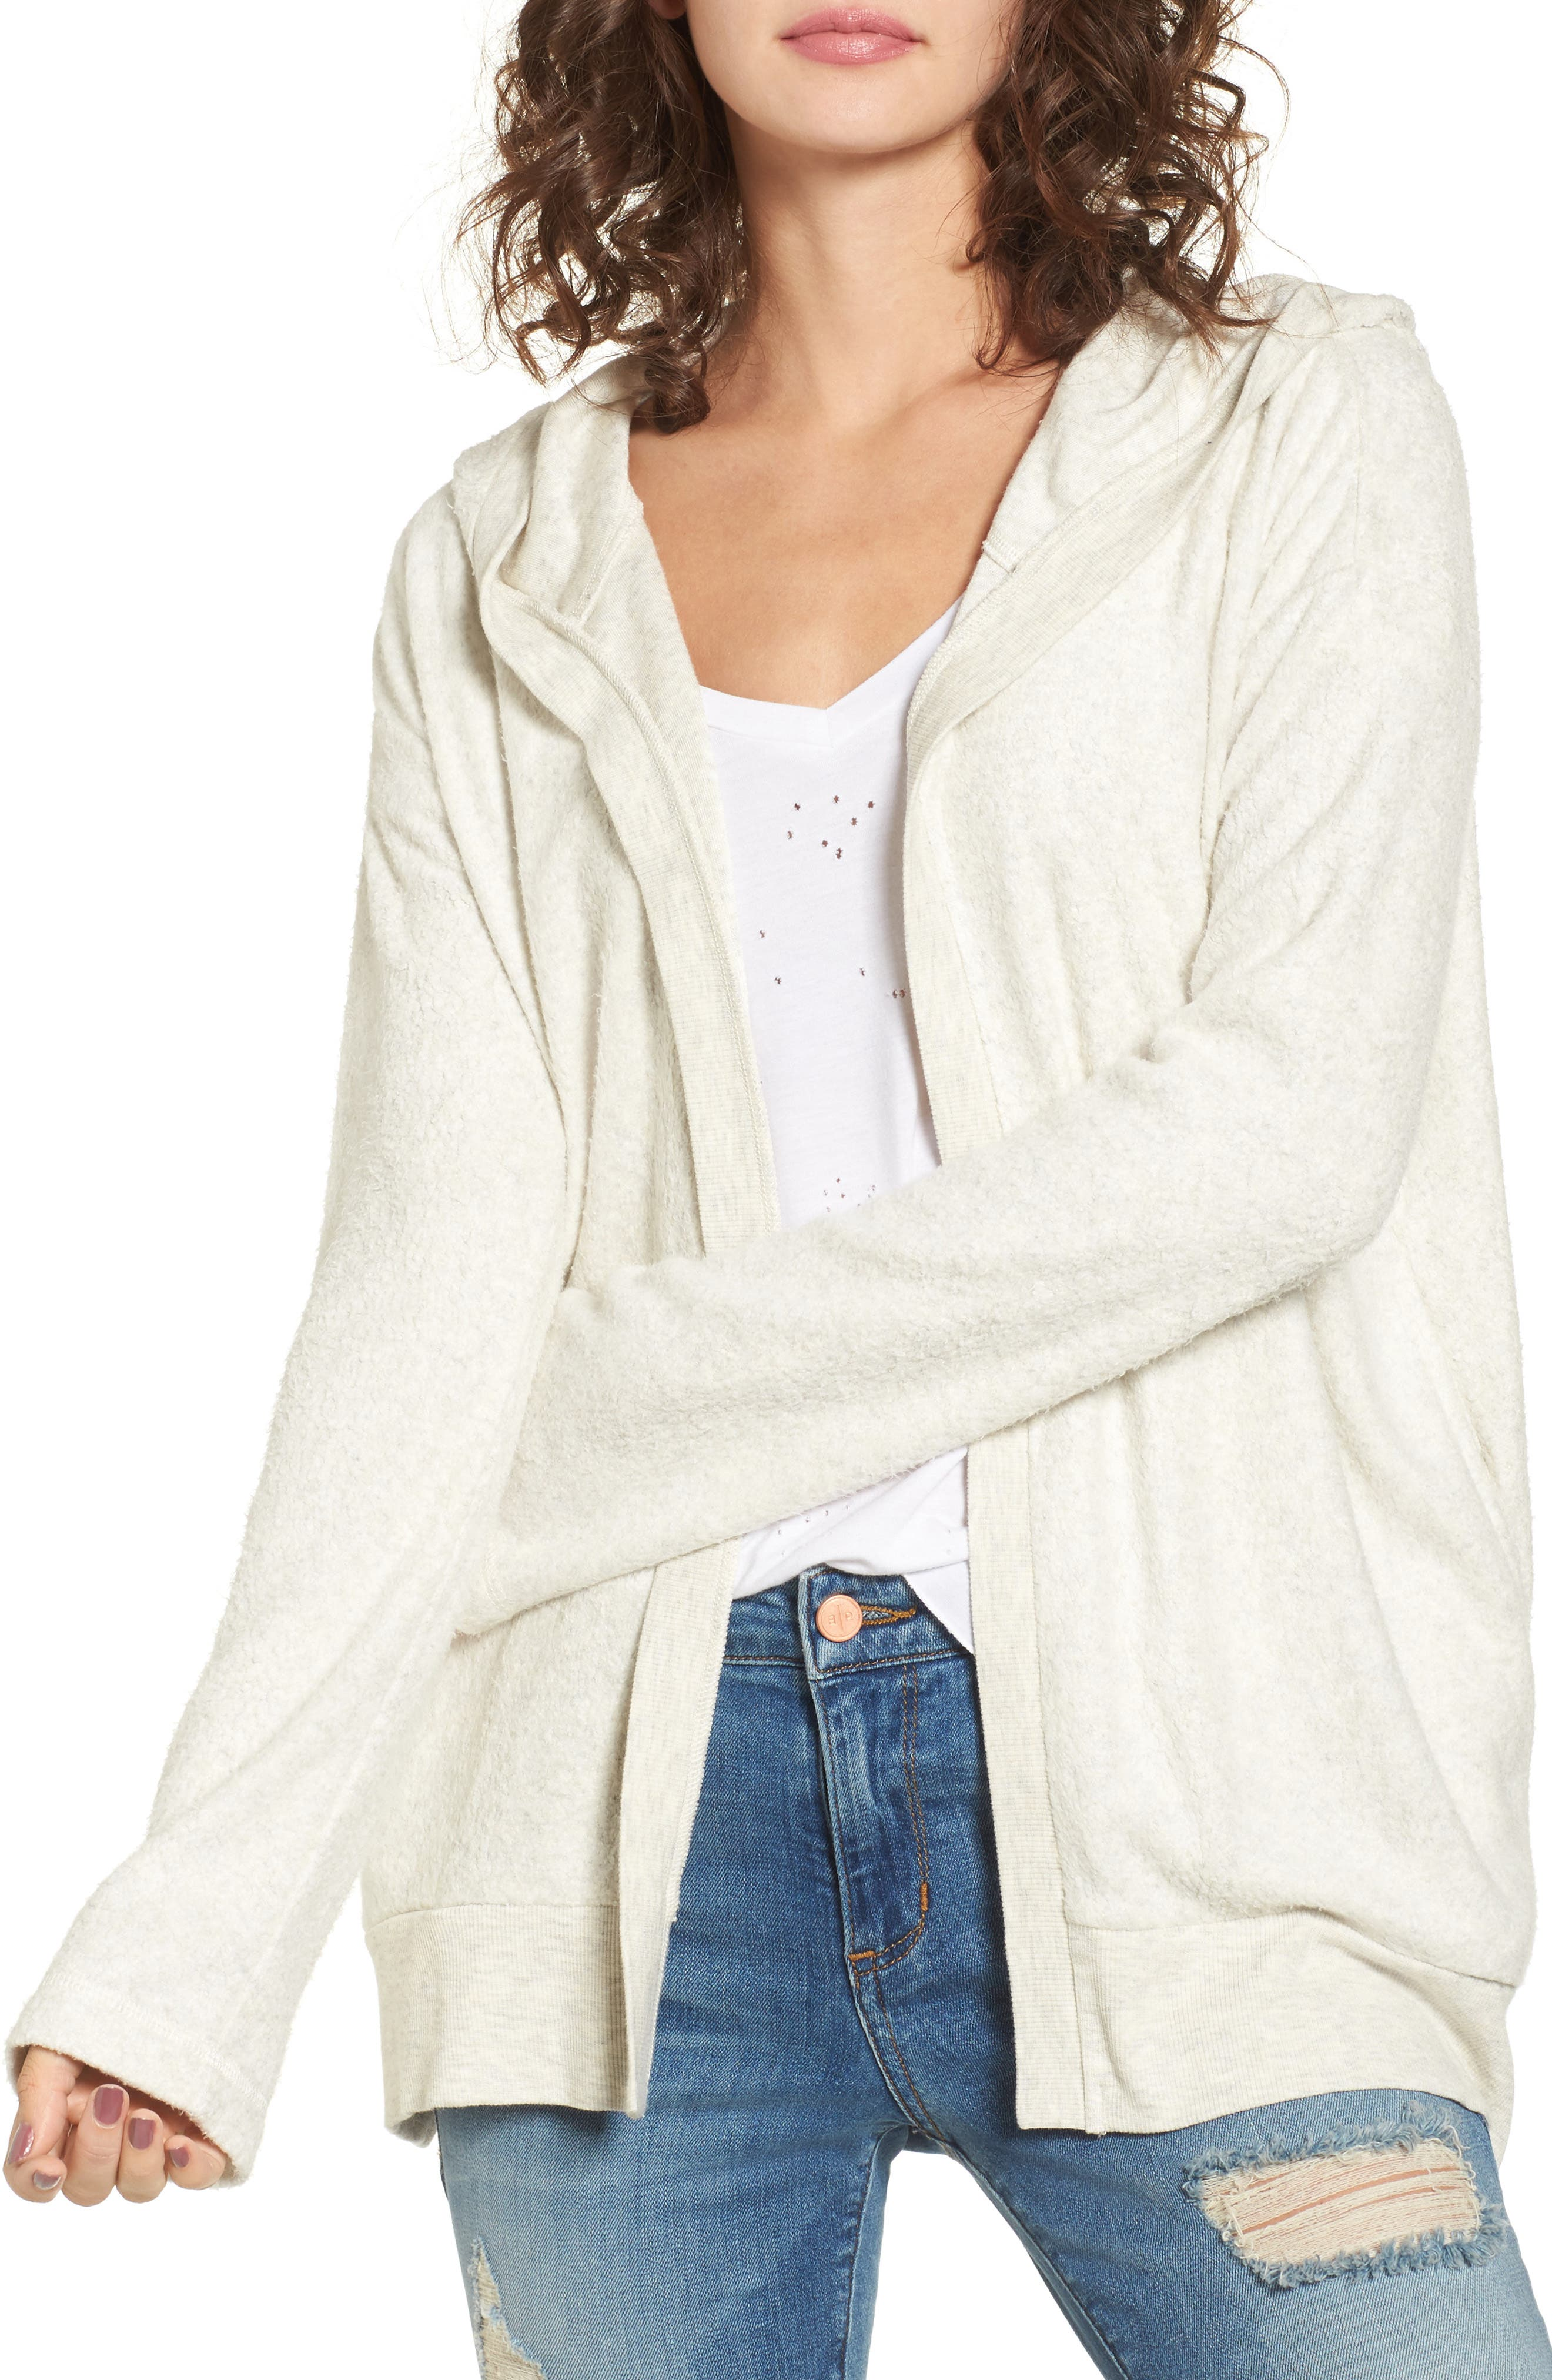 Down in Front Cardigan Hoodie,                         Main,                         color, Ice Athletic Grey